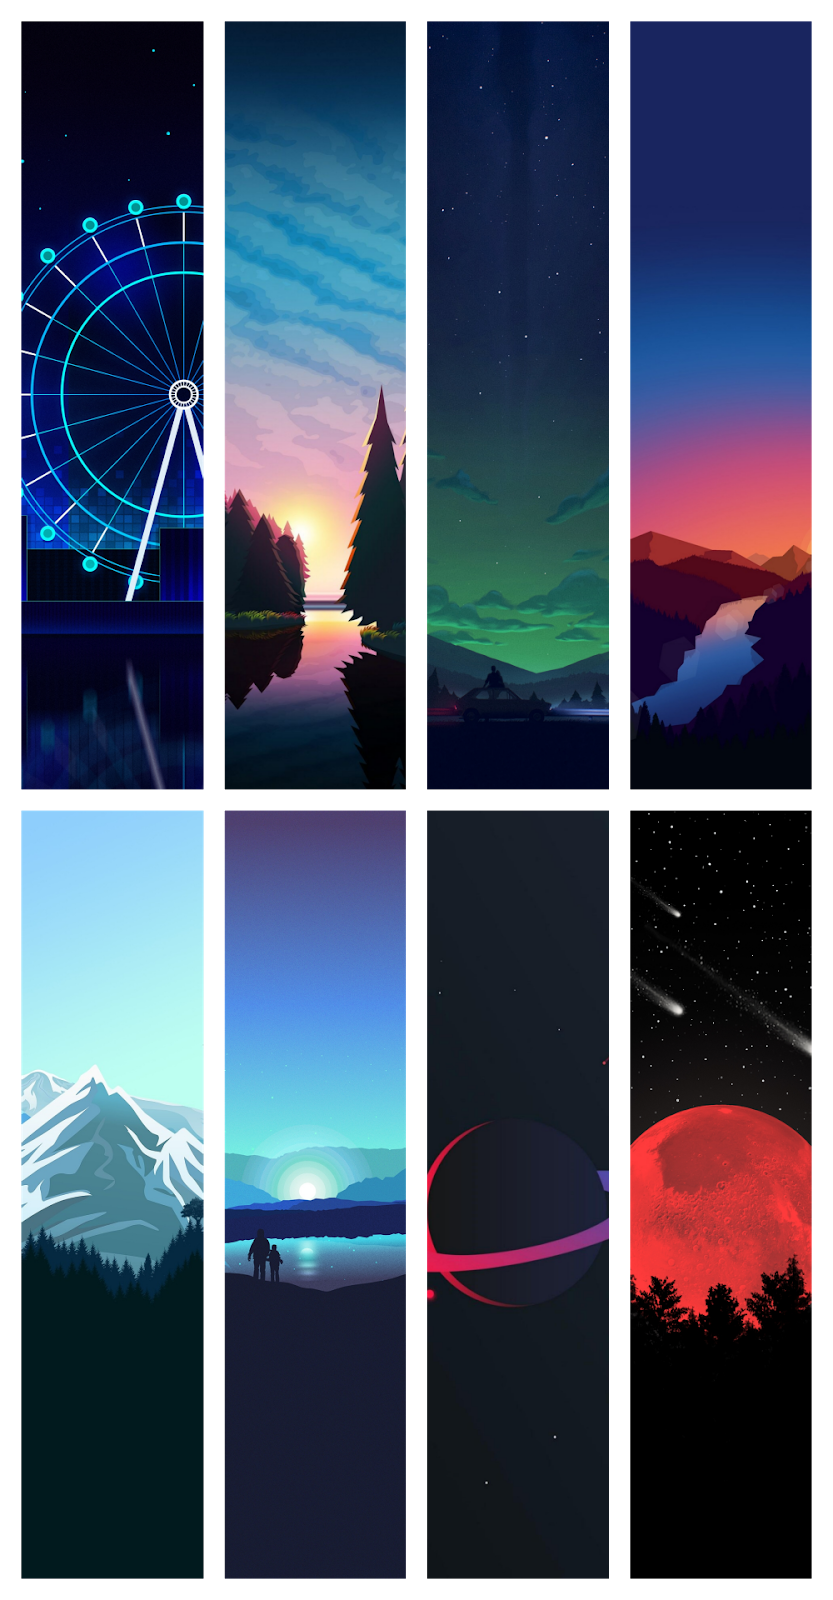 8 cool minimalist wallpapers for phone | WallpaperiZe ...